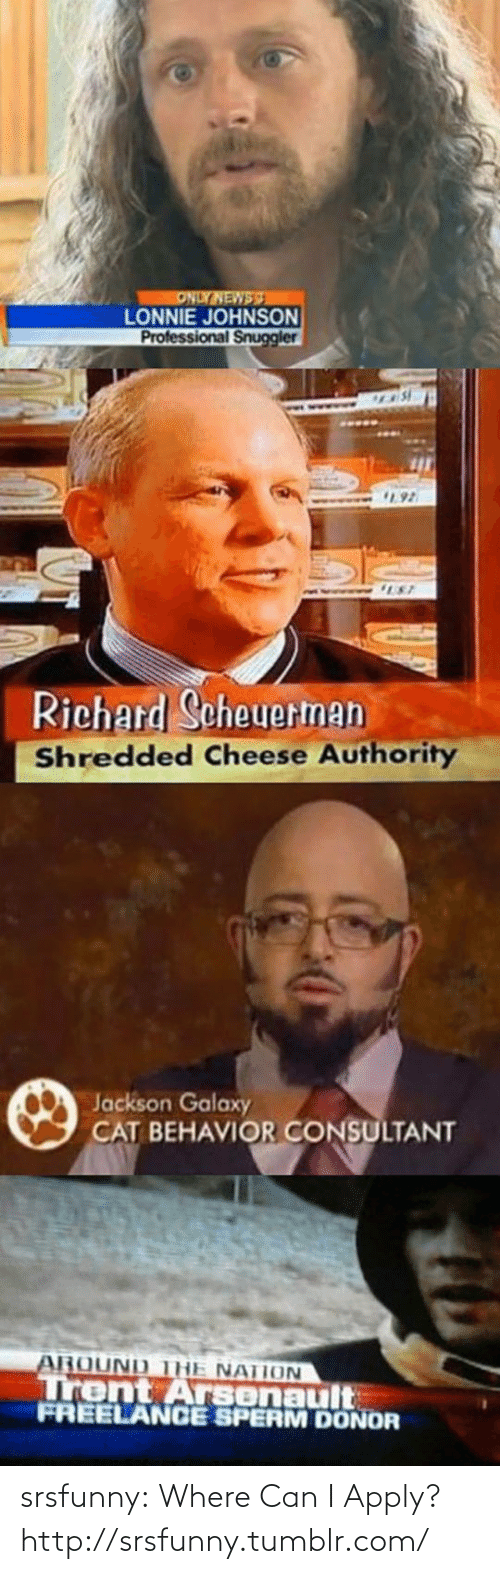 Shredded Cheese: ONLY NEWSS  LONNIE JOHNSON  Professional Snuggler  92  UST  Richard Scheuerman  Shredded Cheese Authority  Jackson Galaxy  CAT BEHAVIOR CONSULTANT  AROUND THE NATION  Trent Arsenault  FREELANCE SPERM DONOR srsfunny:  Where Can I Apply?http://srsfunny.tumblr.com/